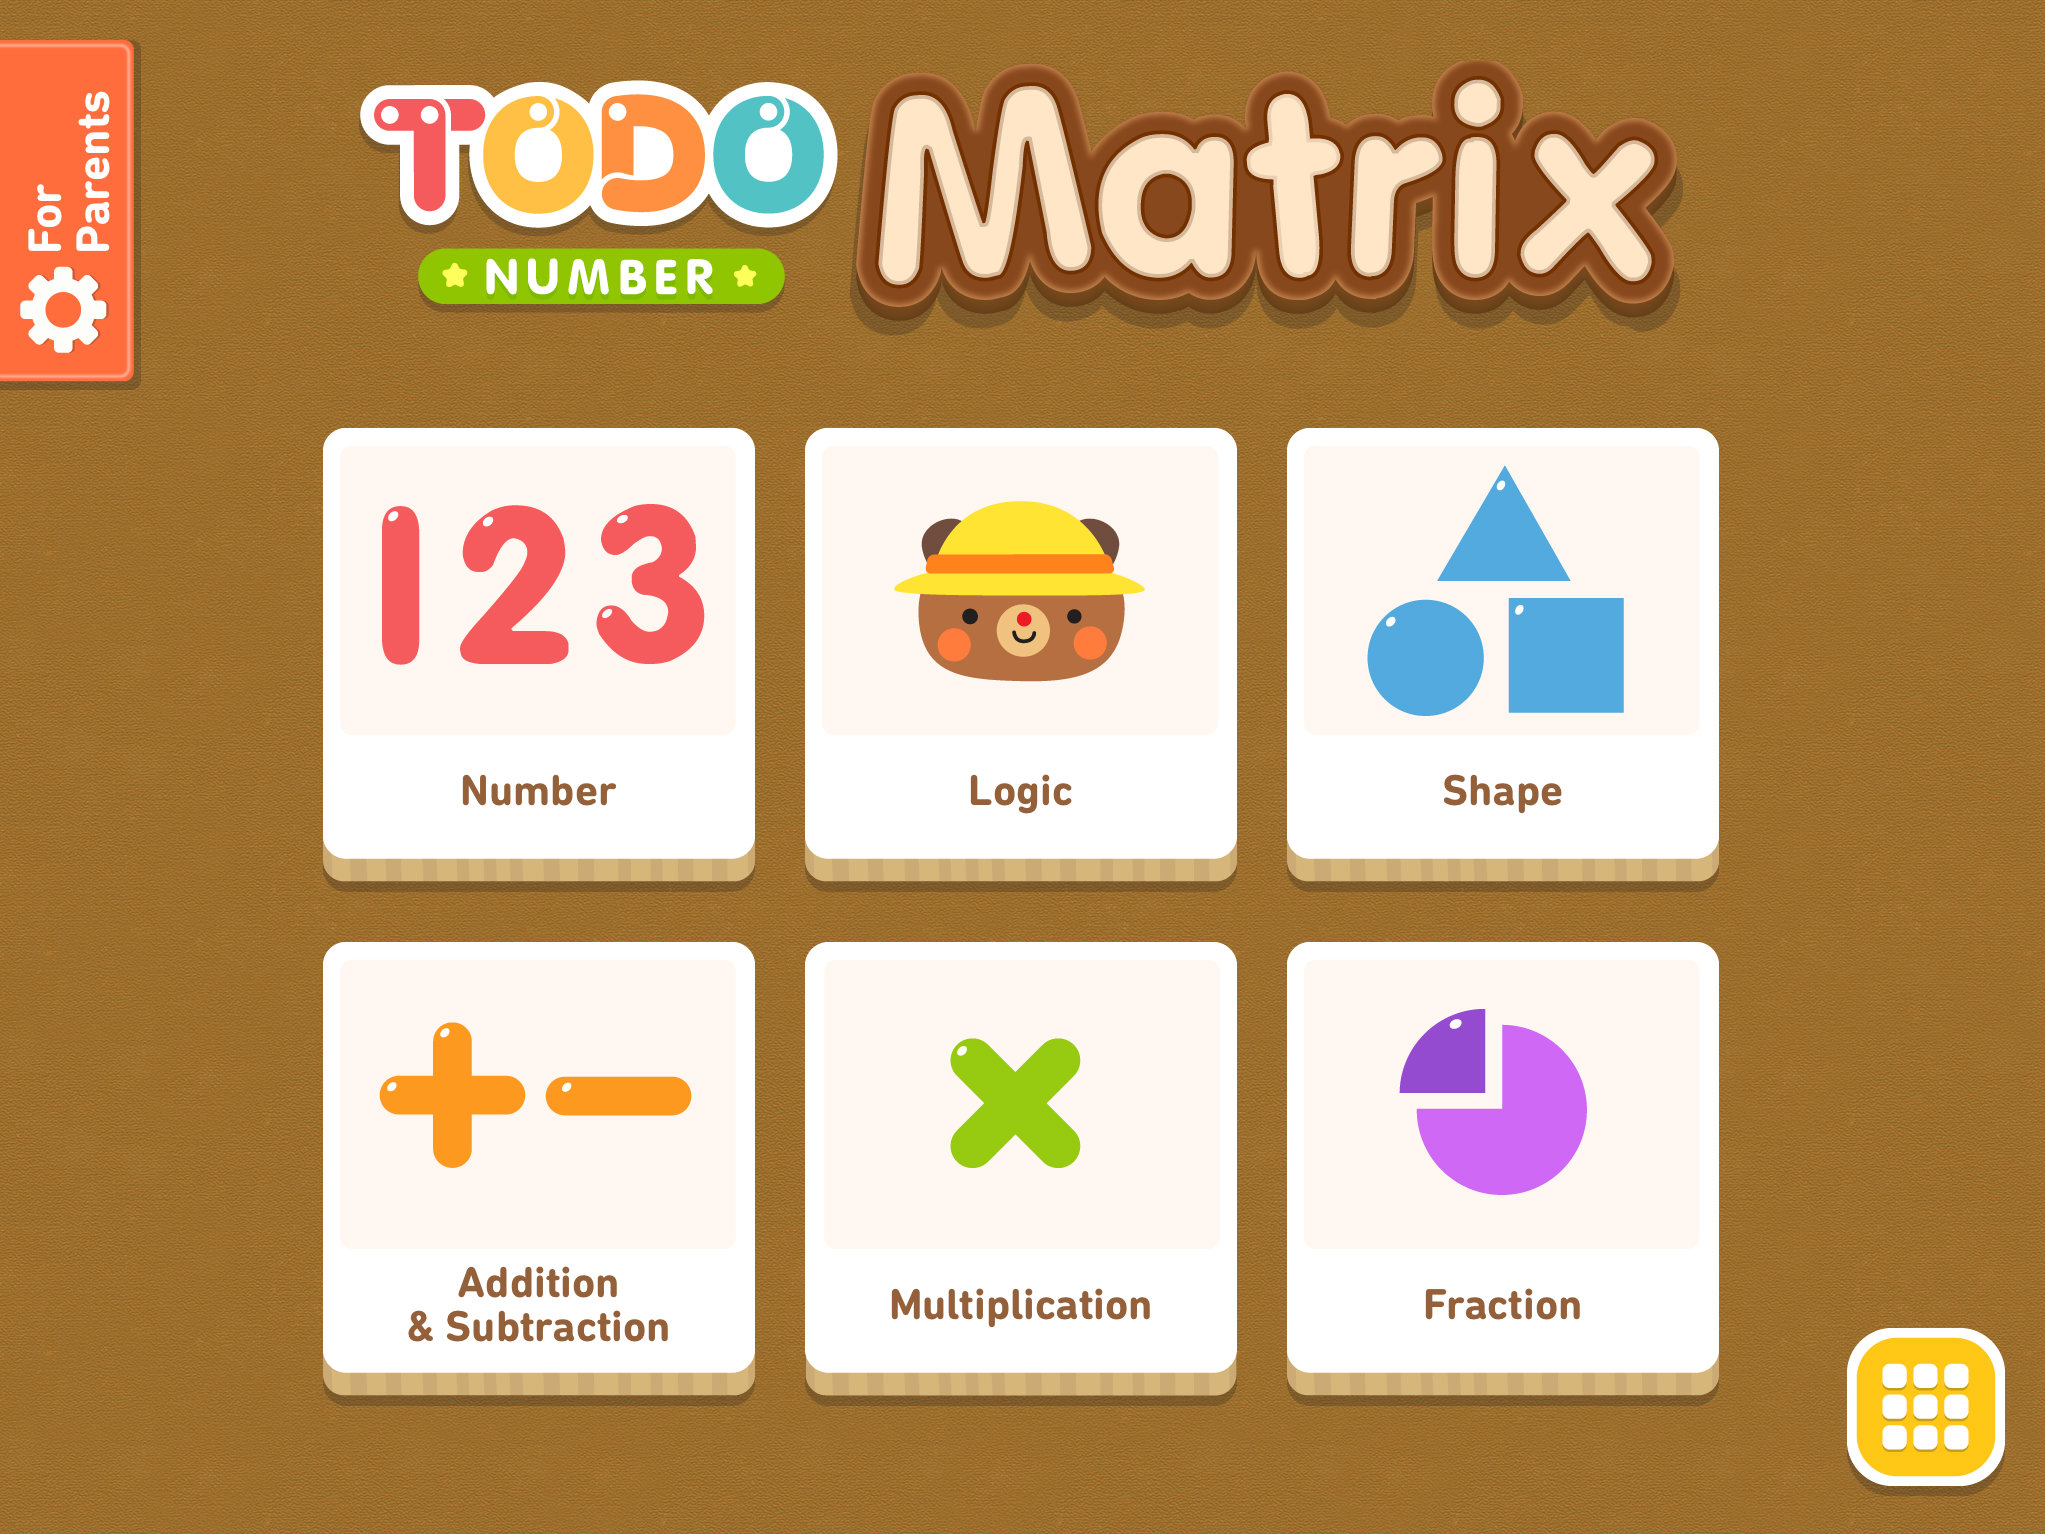 Todo Number Matrix: Brain teasers, logic puzzles, and